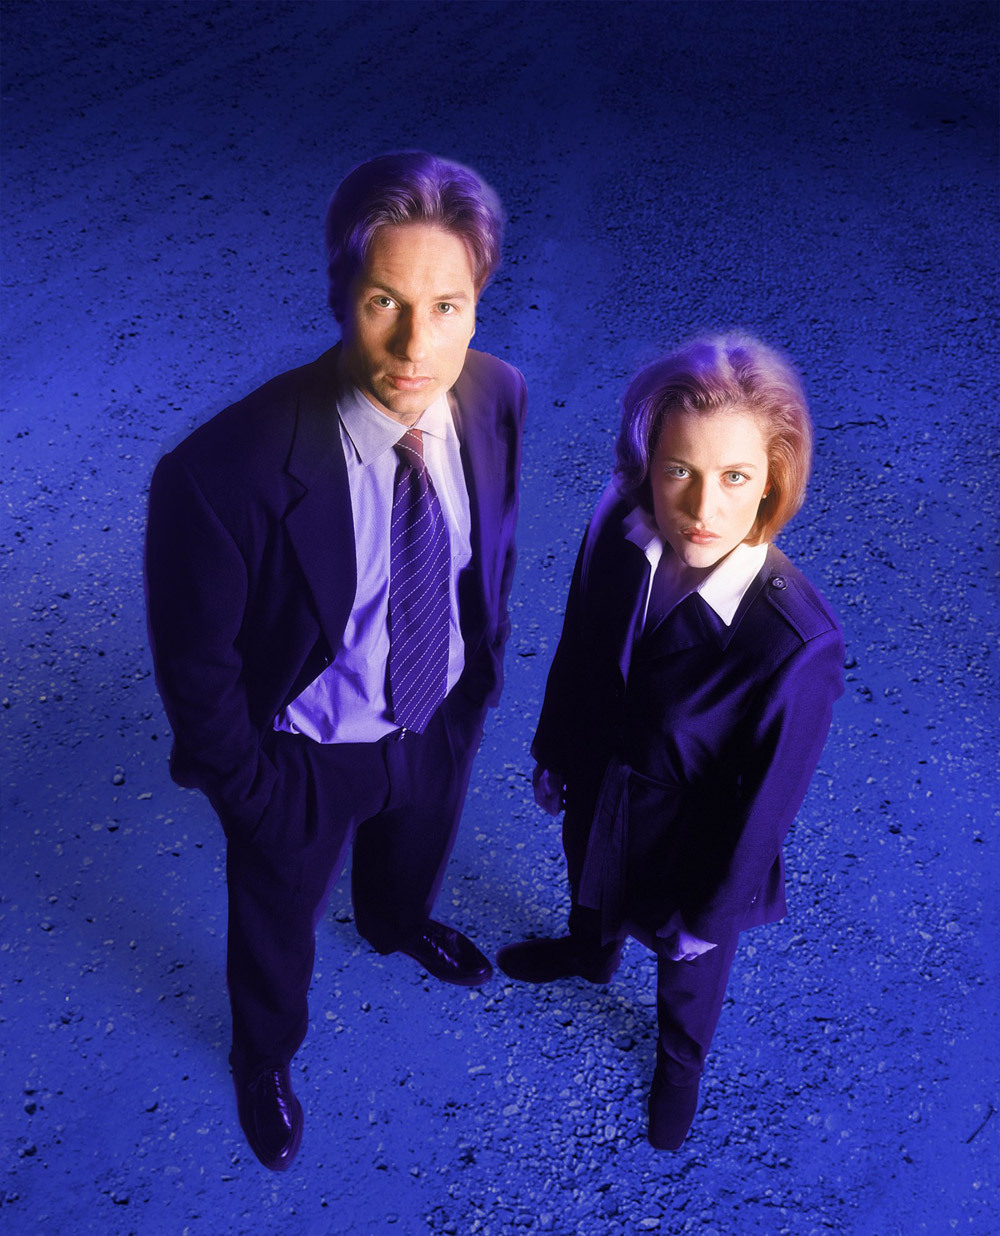 Fight-the-Future-Promo-Image-the-x-files-fight-the-future-7686887-1000-1236